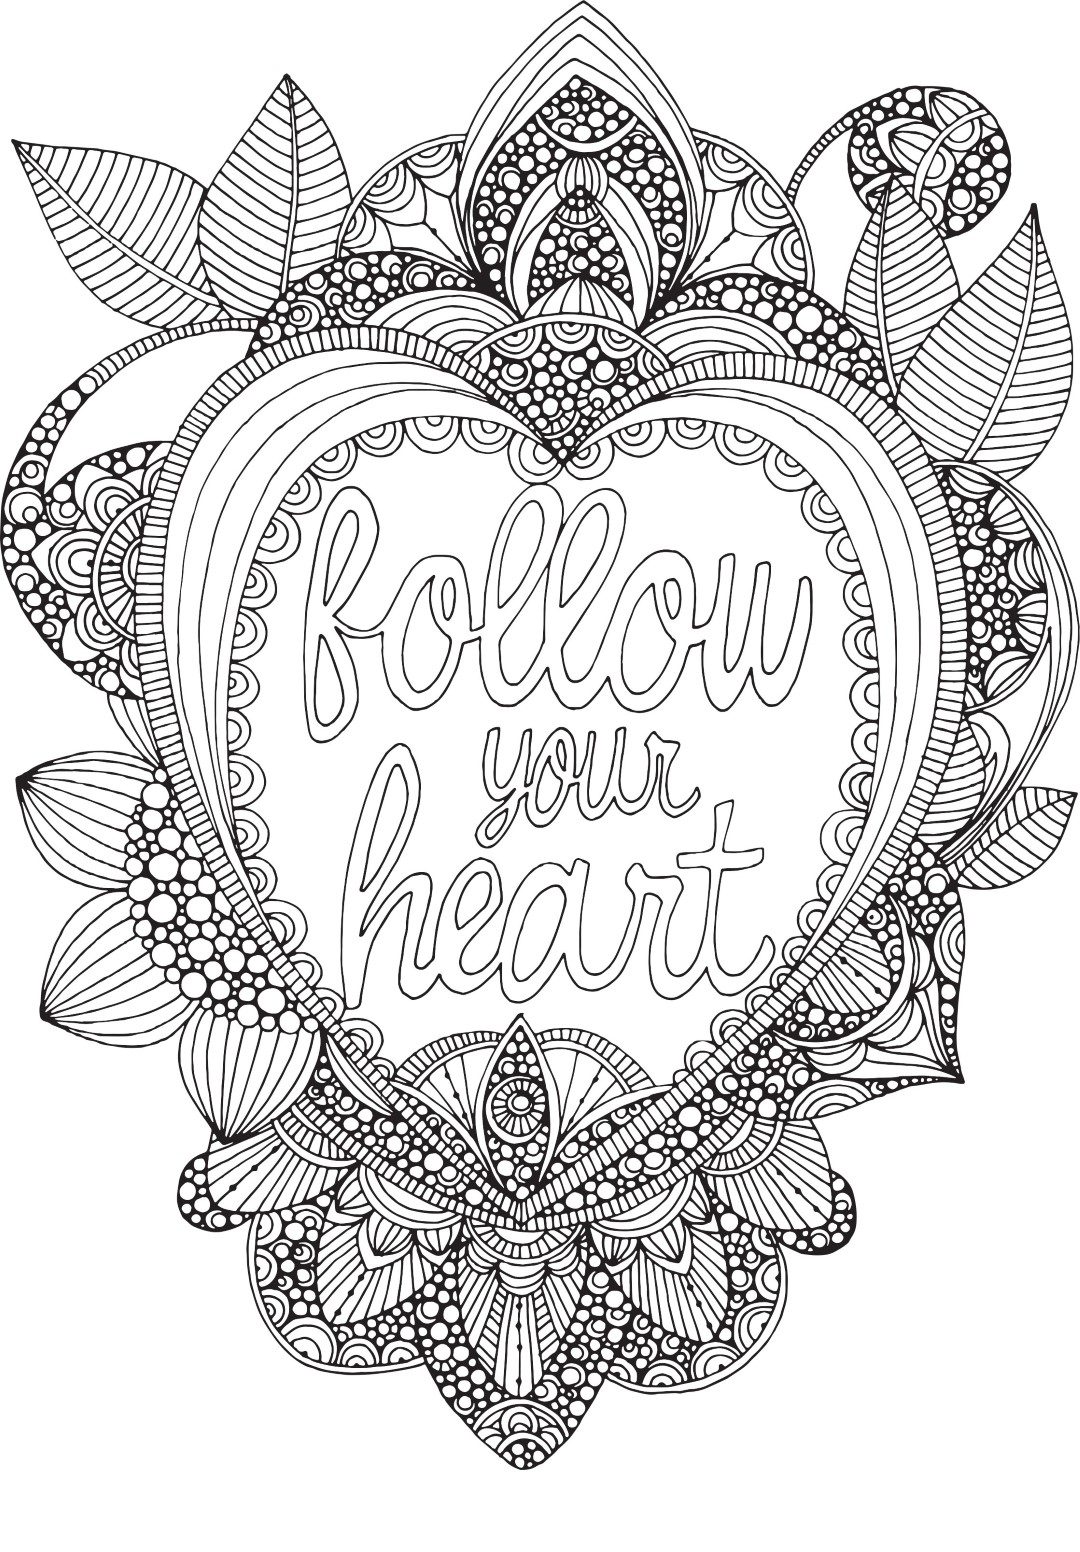 Follow Your Heart Coloring Page for Adults